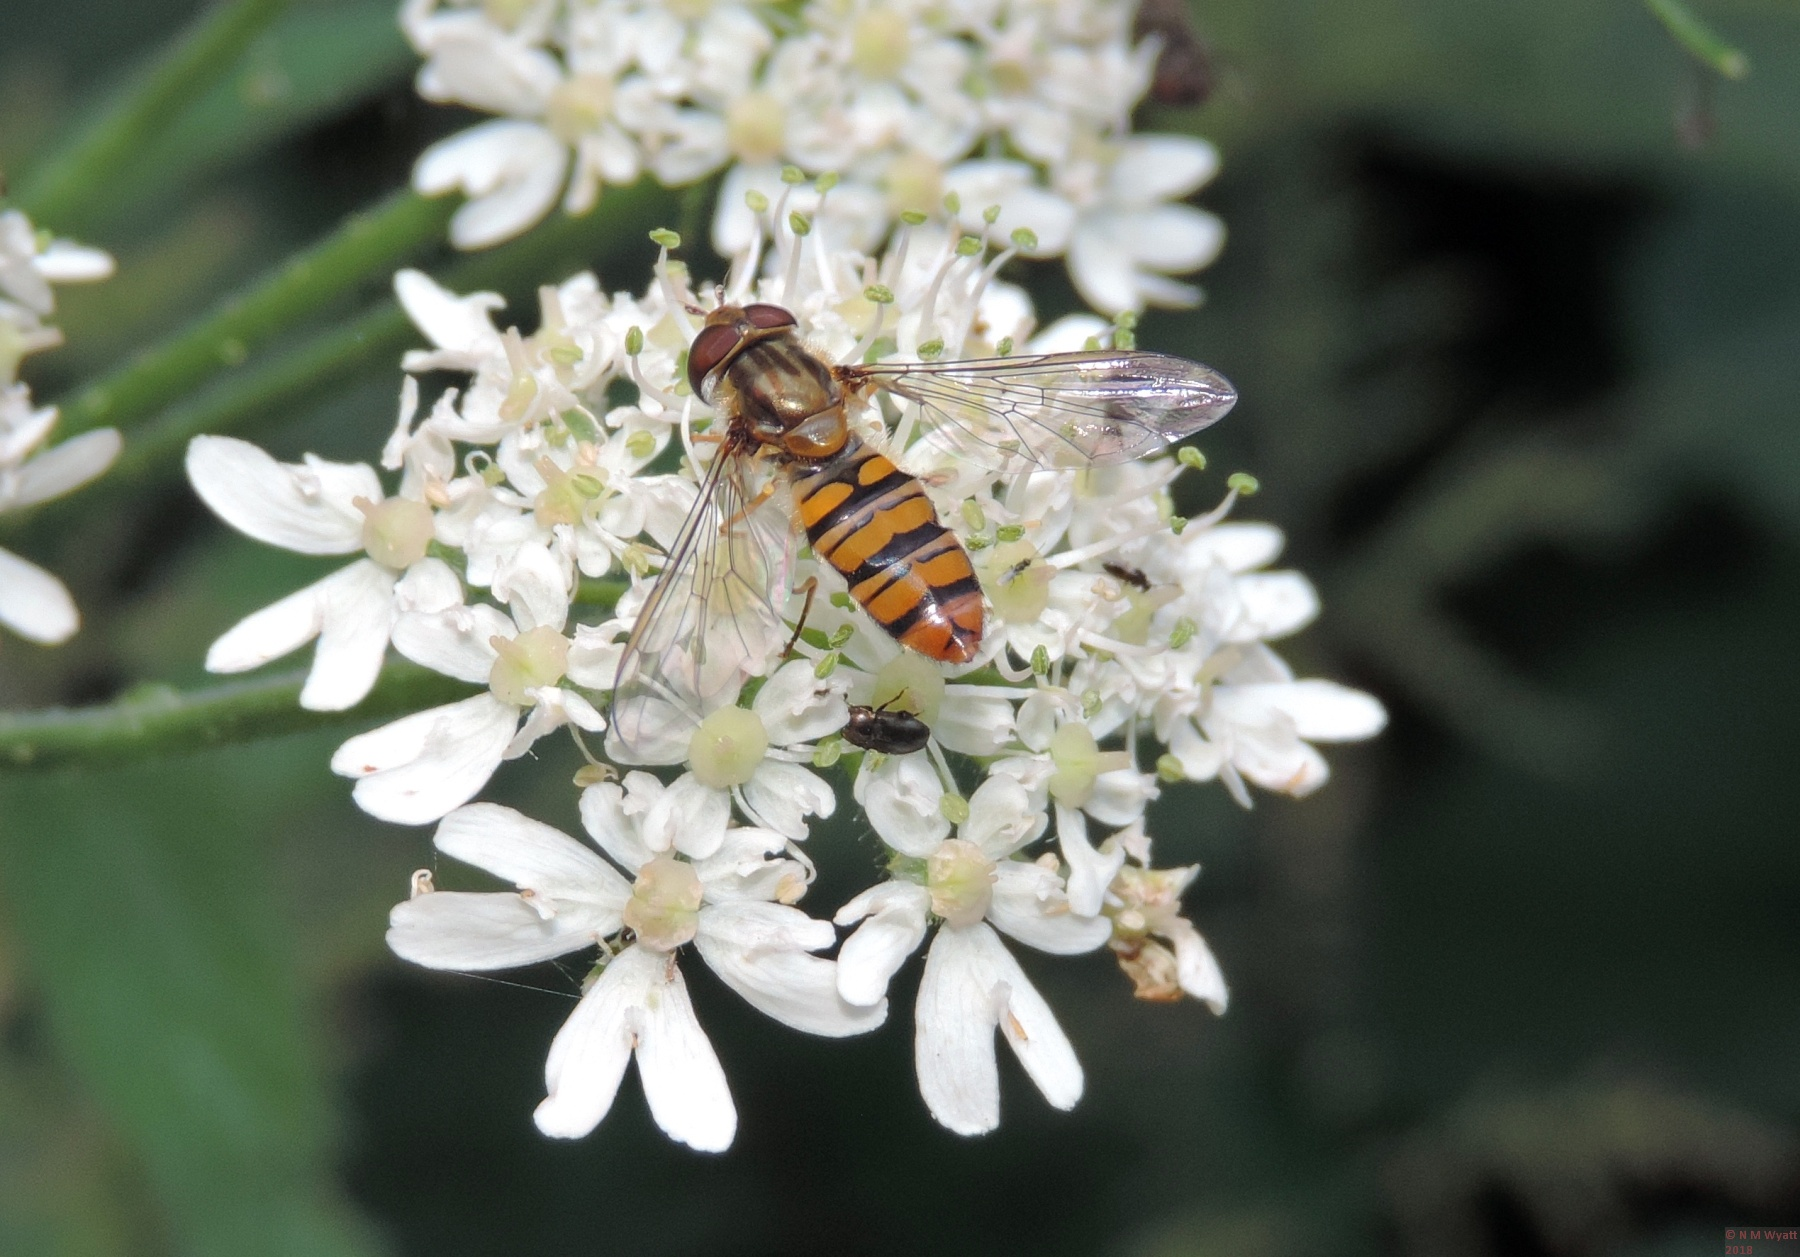 Hoverfly still on hogweed showing